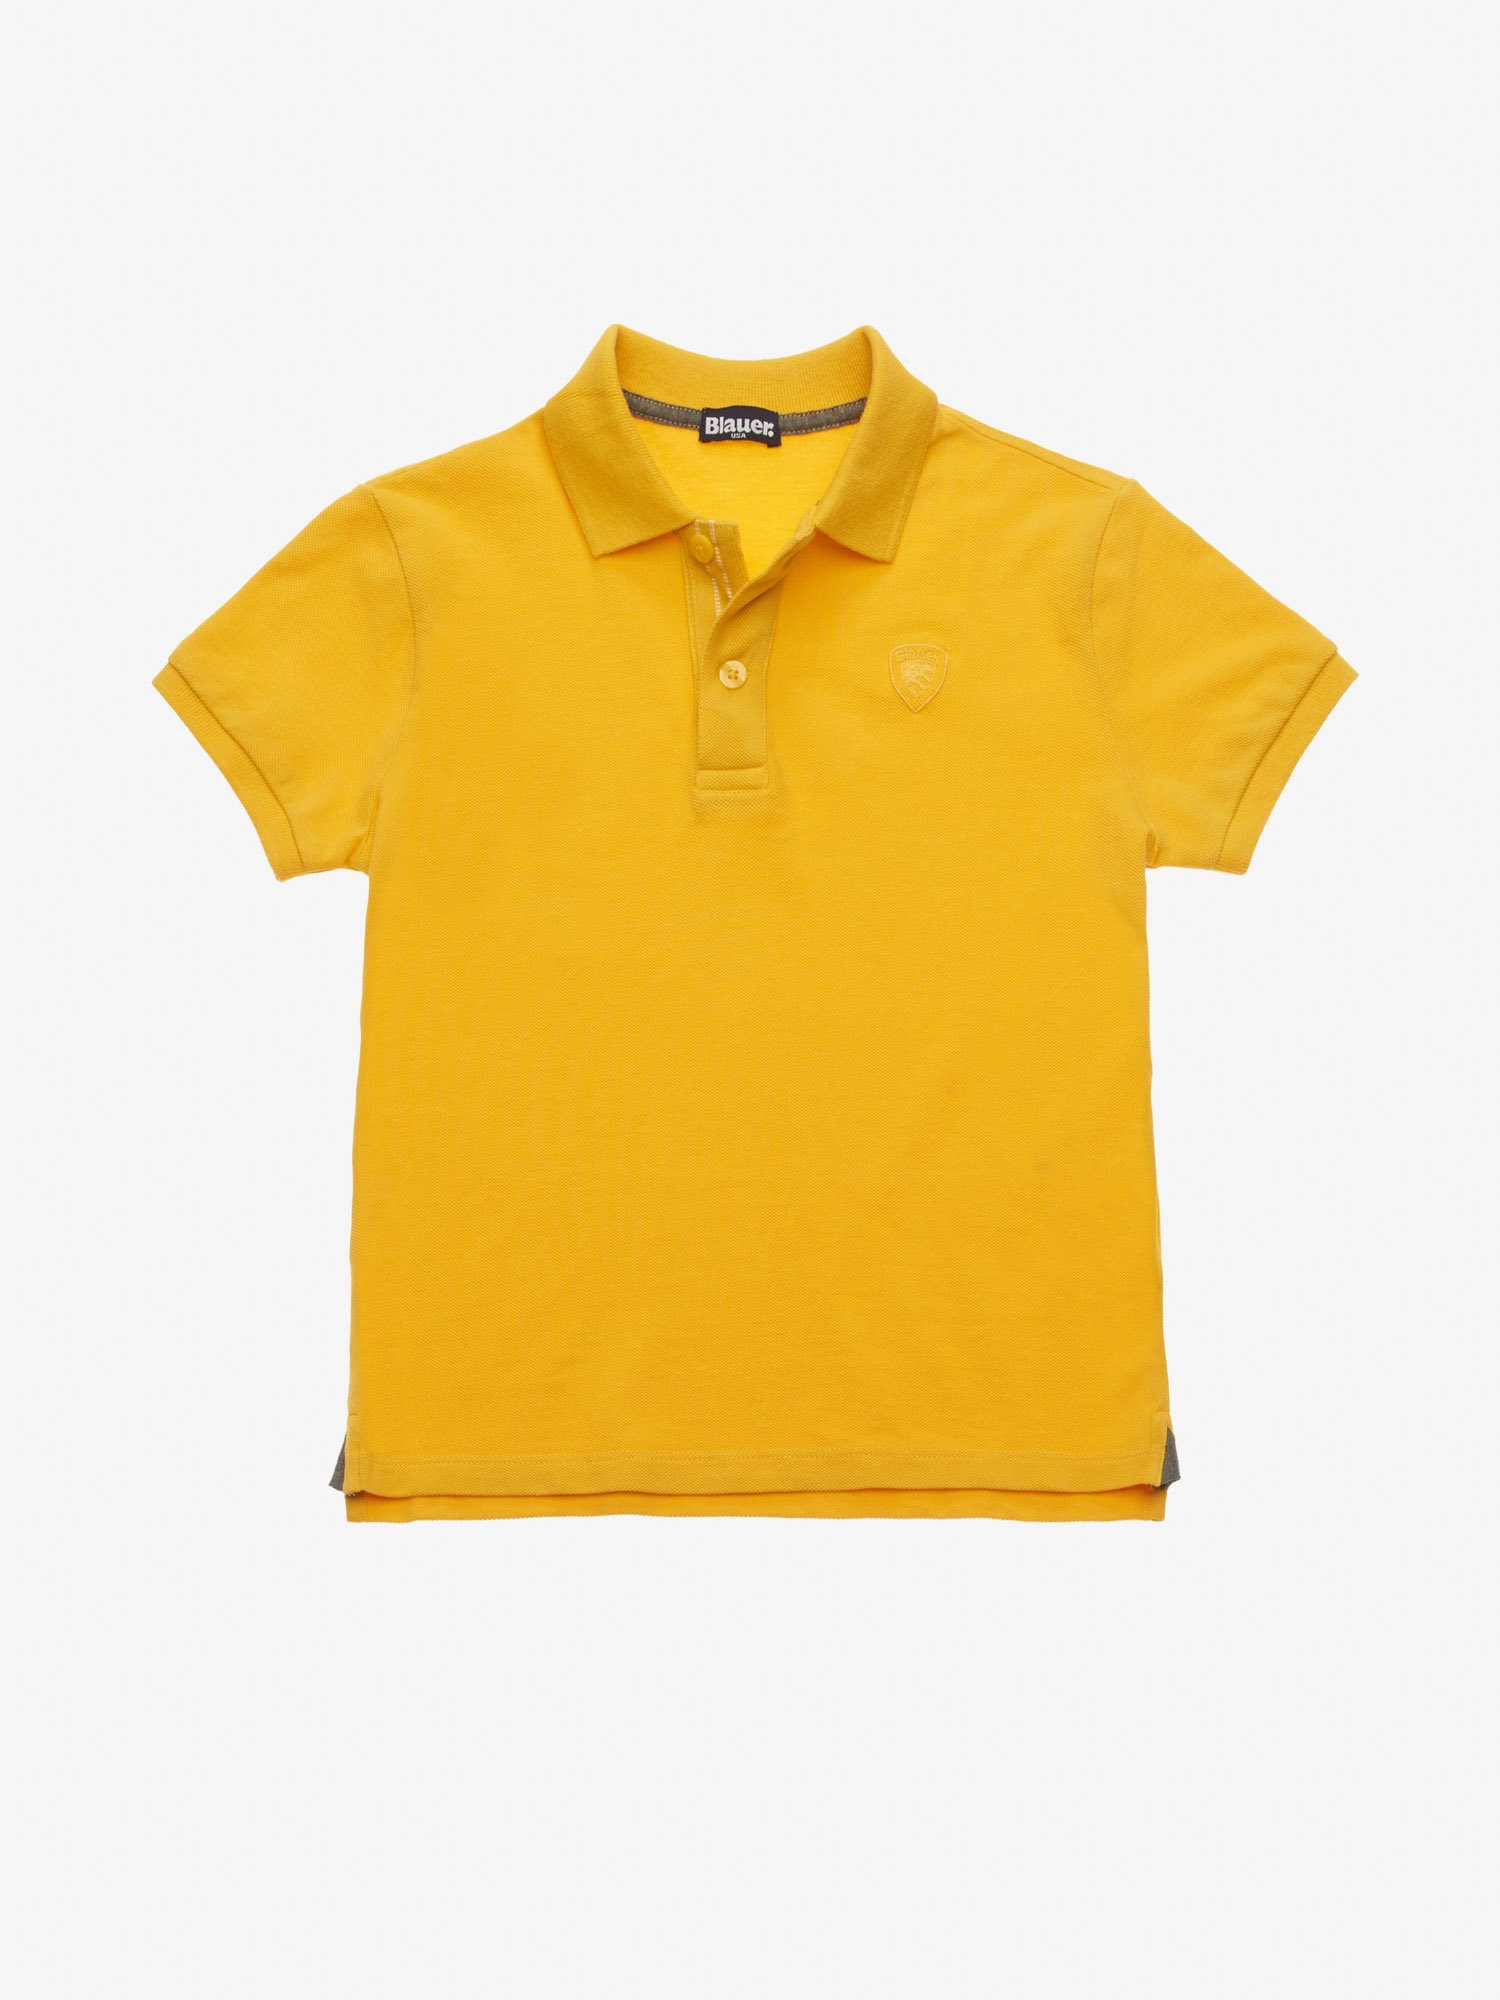 JUNIOR LIGHTWEIGHT PIQUE POLO SHIRT - Blauer